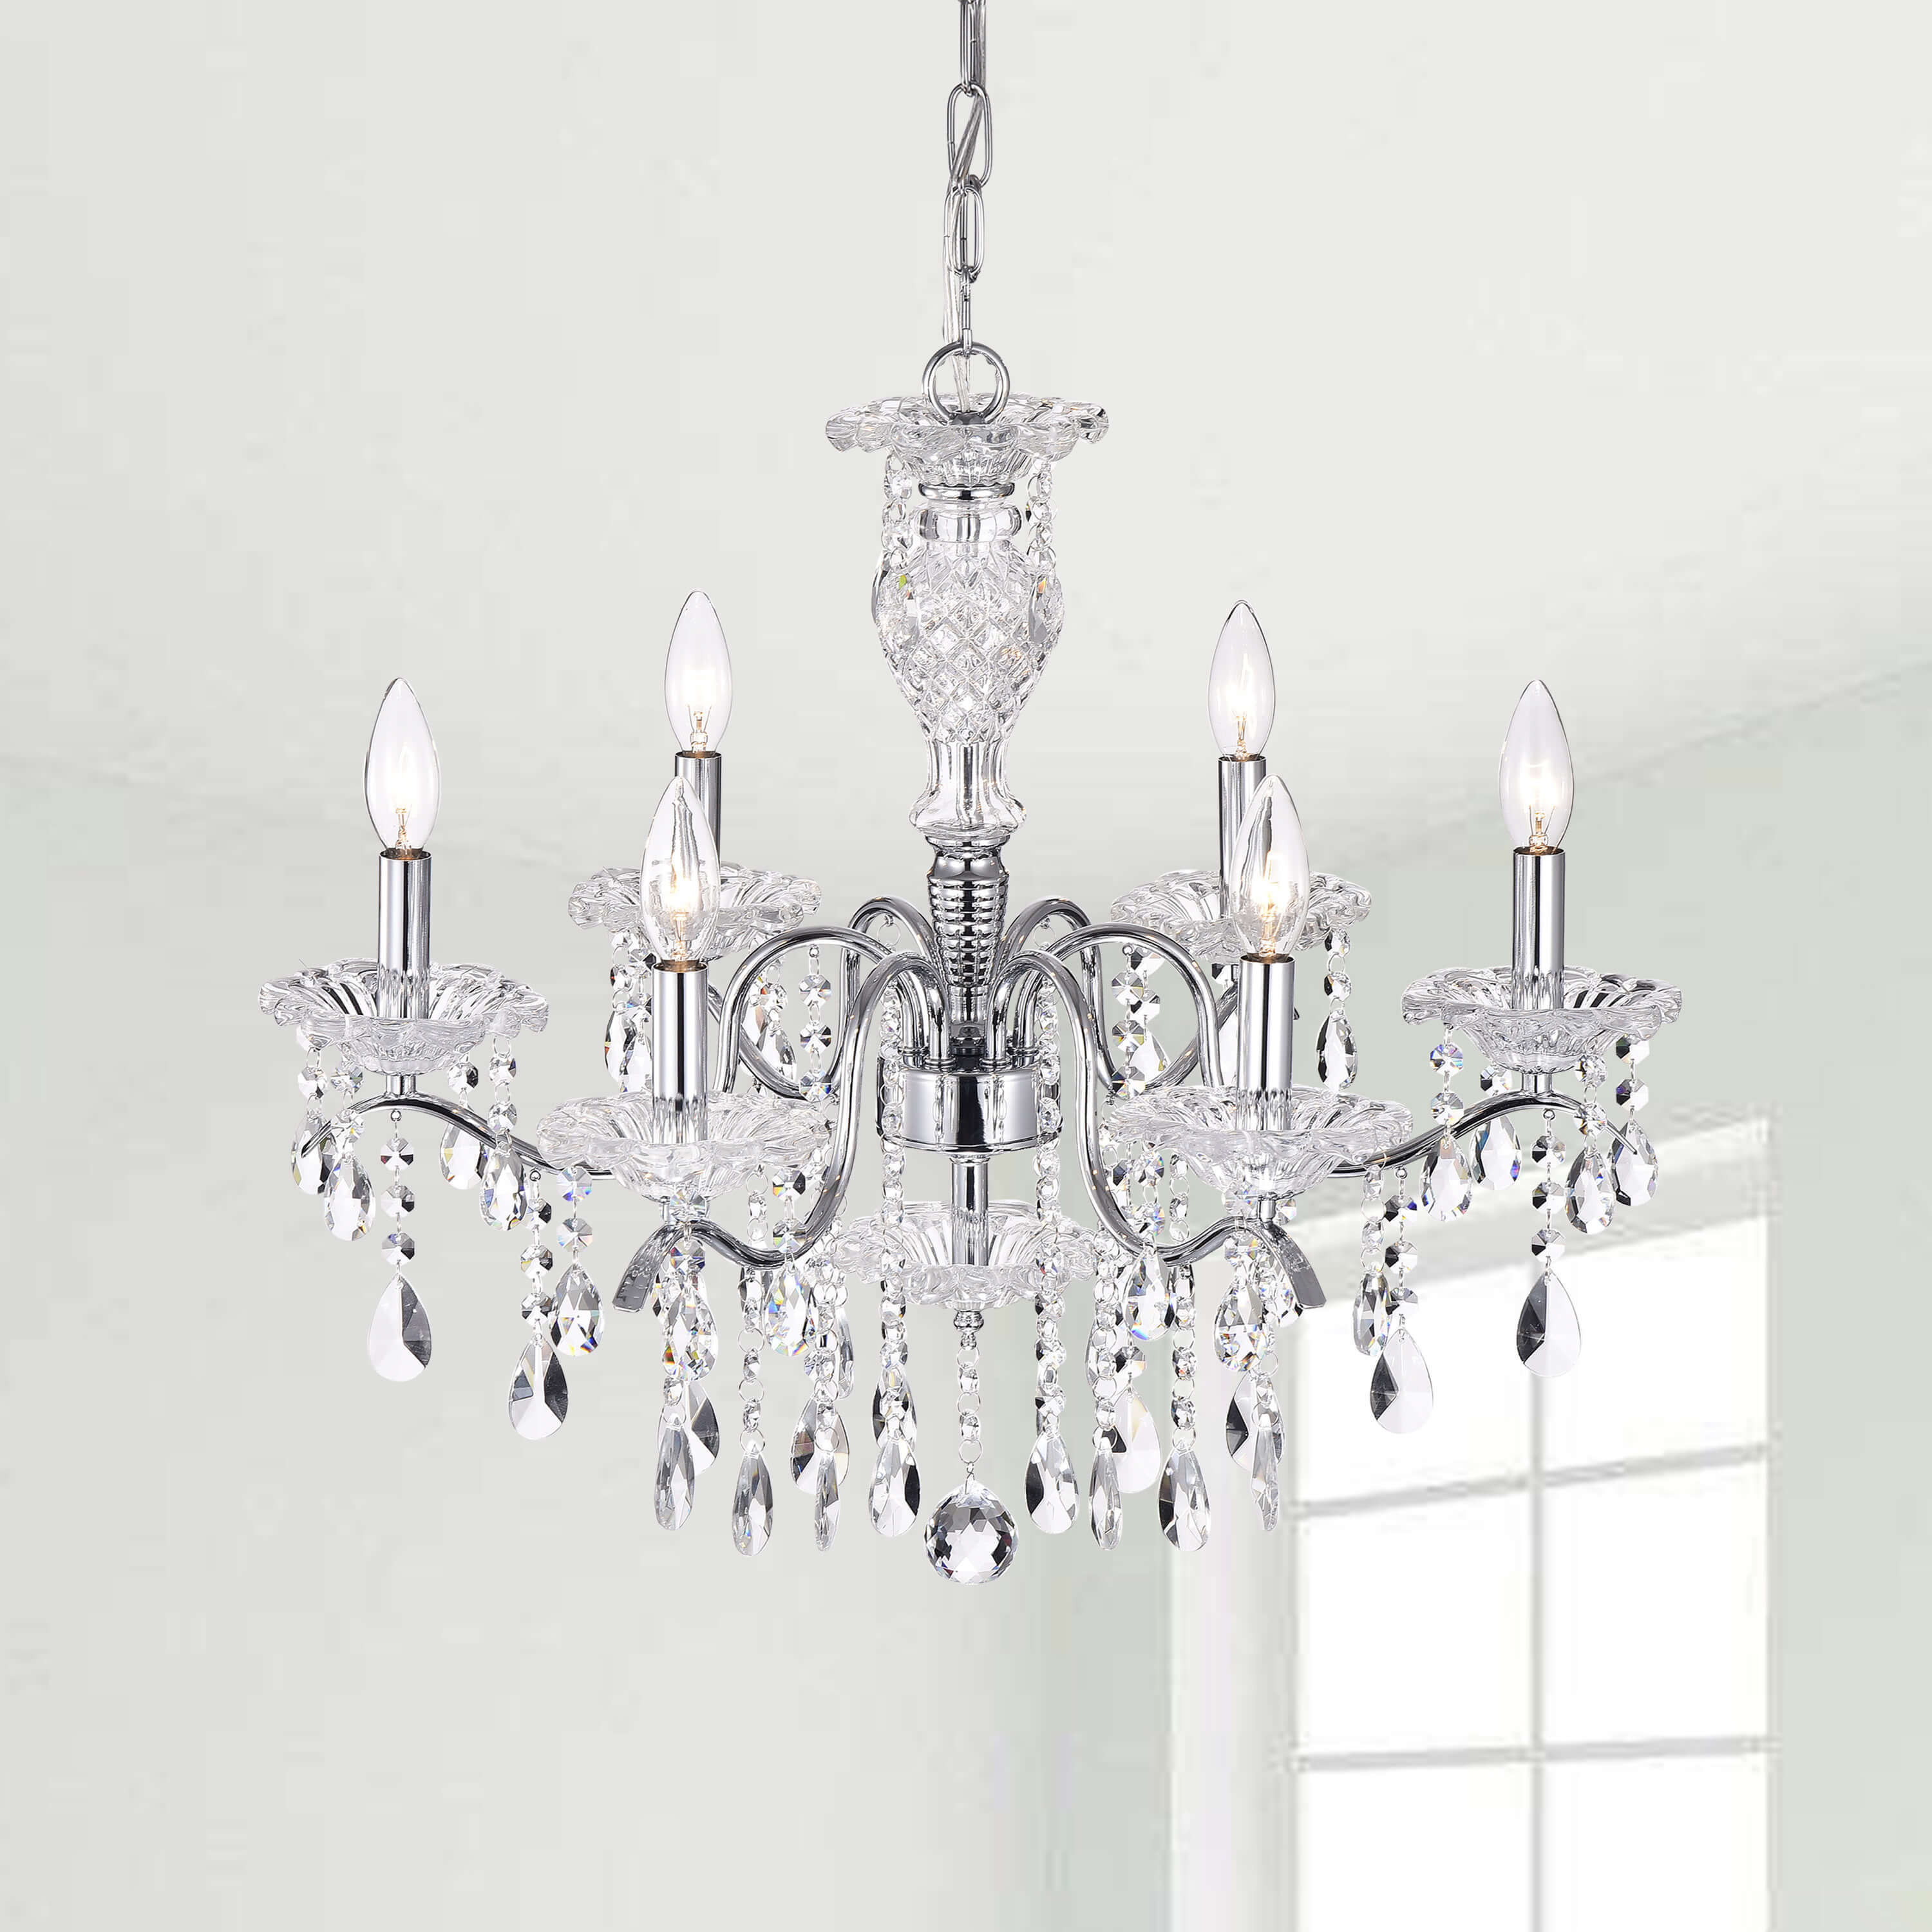 Silver orchid taylor indoor 6 light chrome crystal candle light chandelier